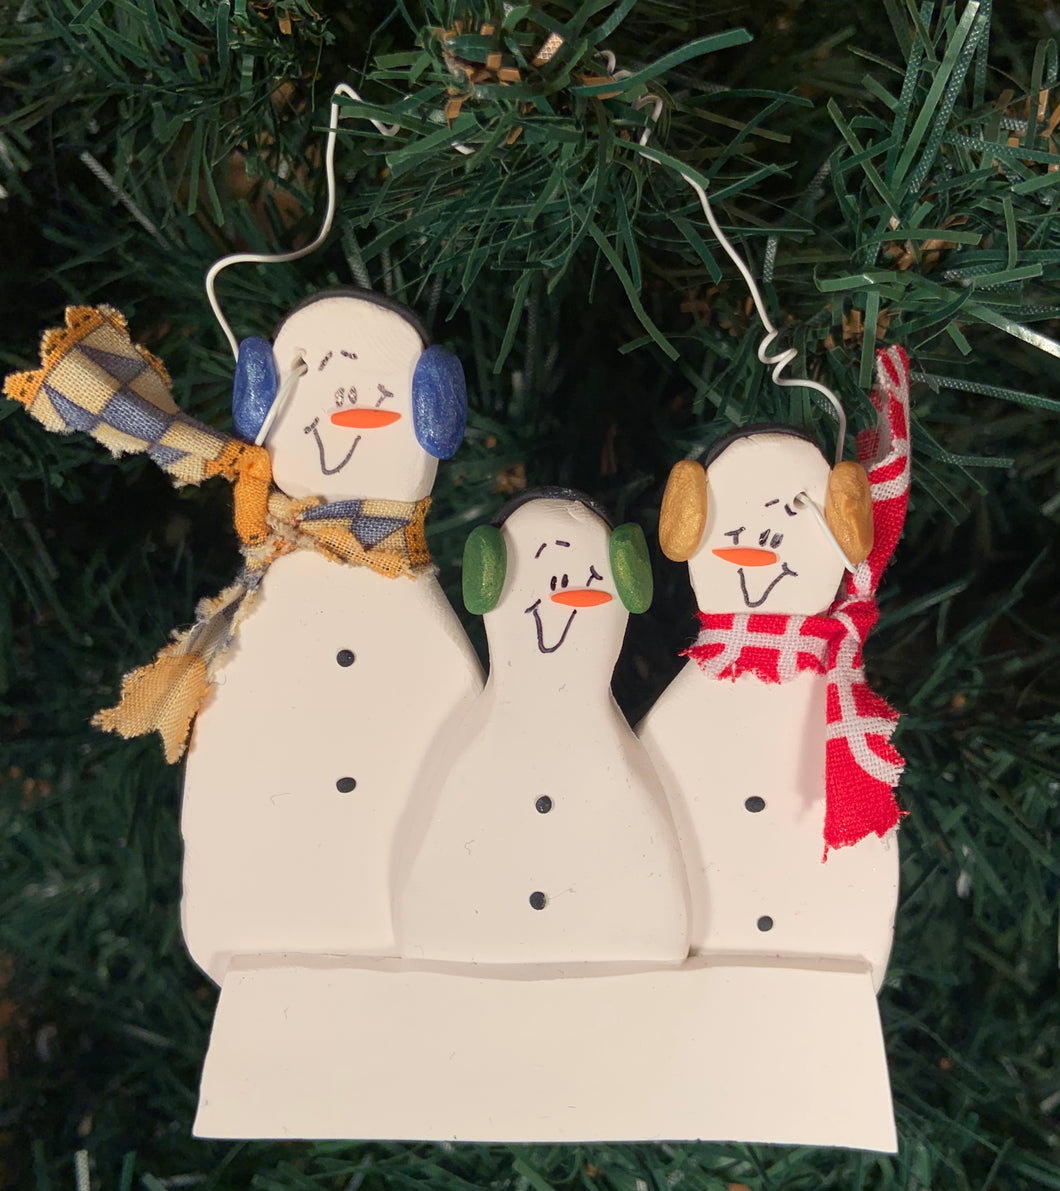 Snowman Family Tree Ornament with 3